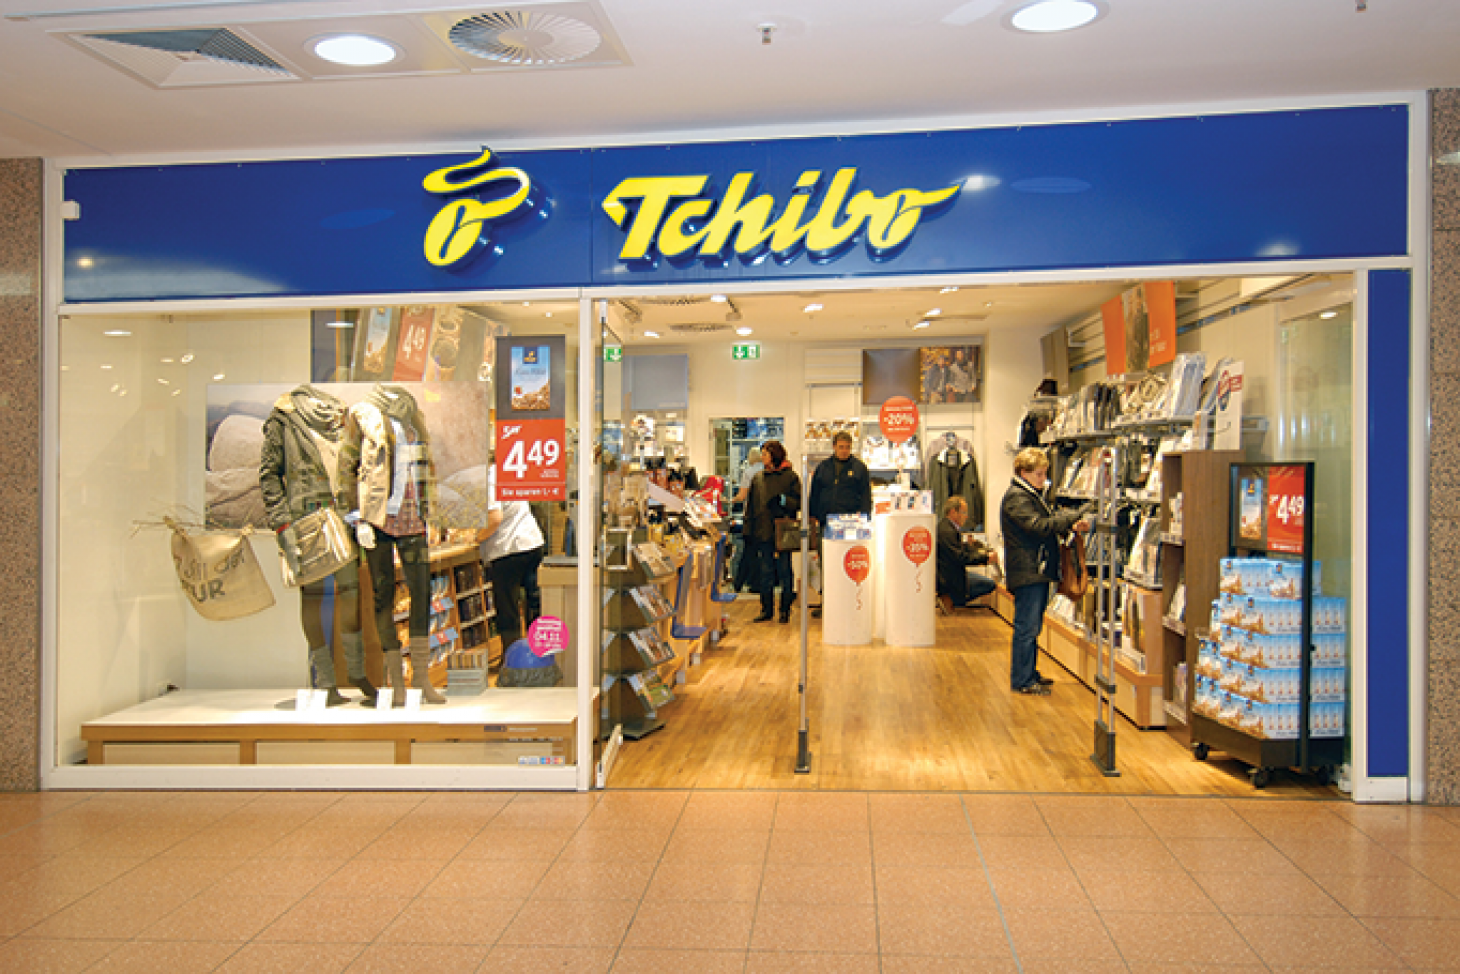 b3dbd551b8 Some people like a cookie with their coffee, but Tchibo's customers get a  whole lot more. Tchibo, a German coffee chain that offers an assortment of  ...